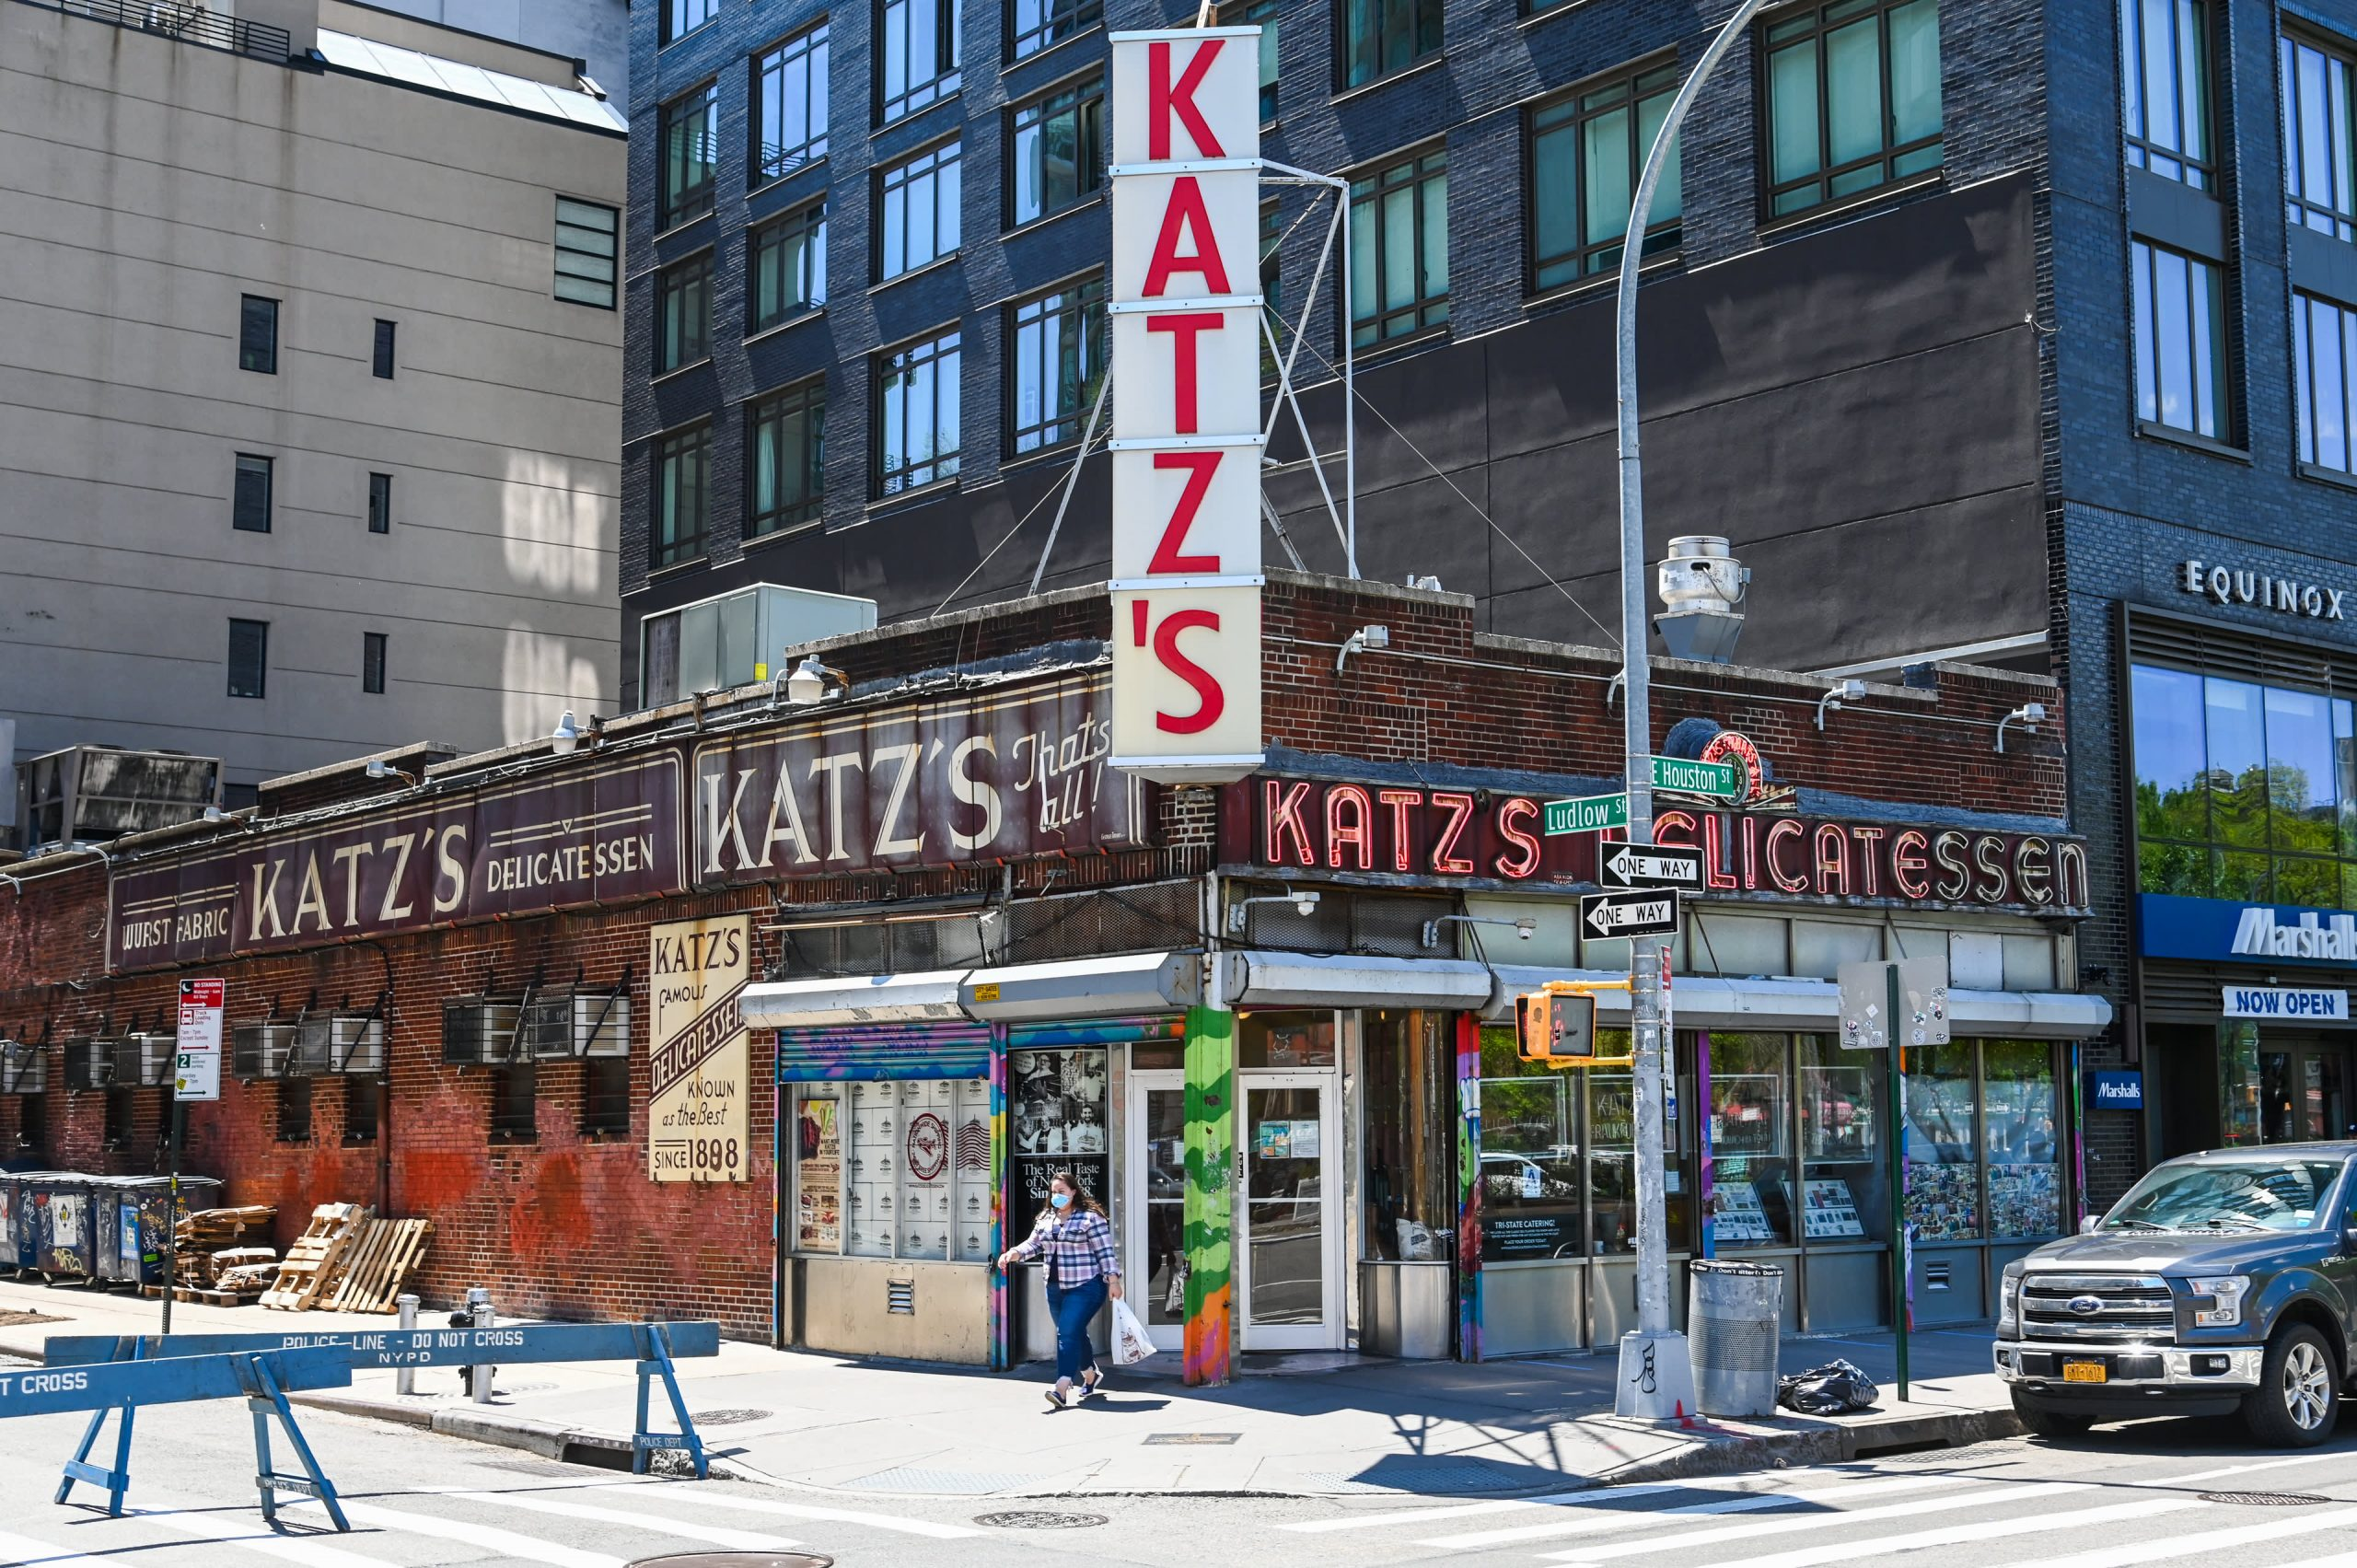 Katz's deli survived the 1918 pandemic. Here's how it's navigating Covid